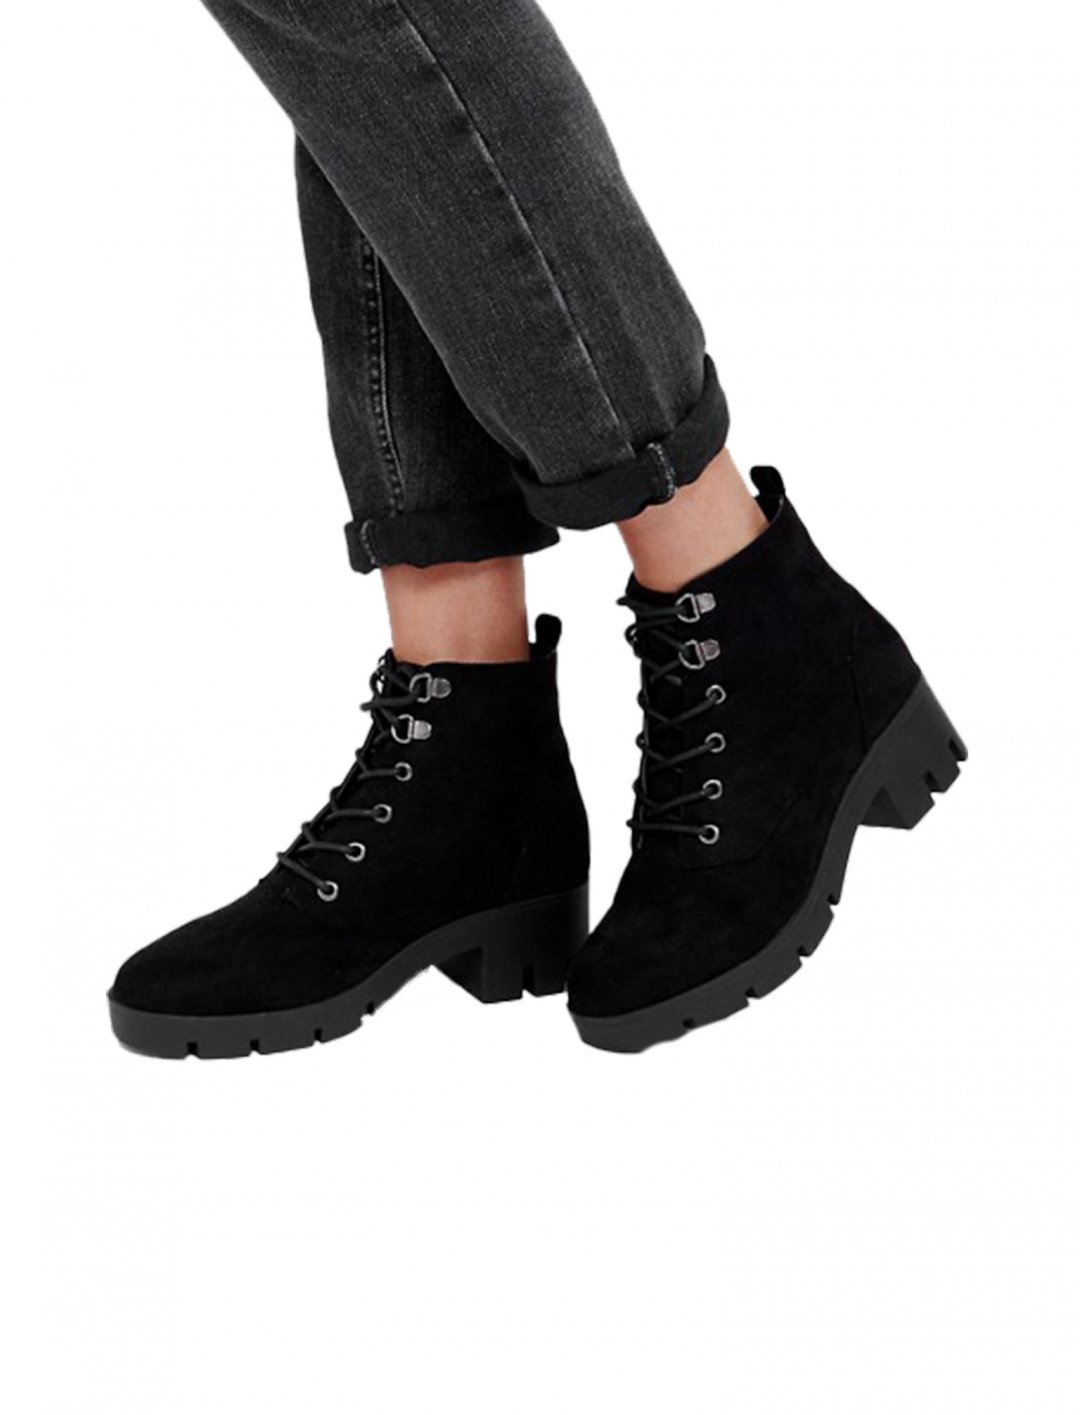 "Asos Hiker Ankle Boots {""id"":12,""product_section_id"":1,""name"":""Shoes"",""order"":12} Asos"